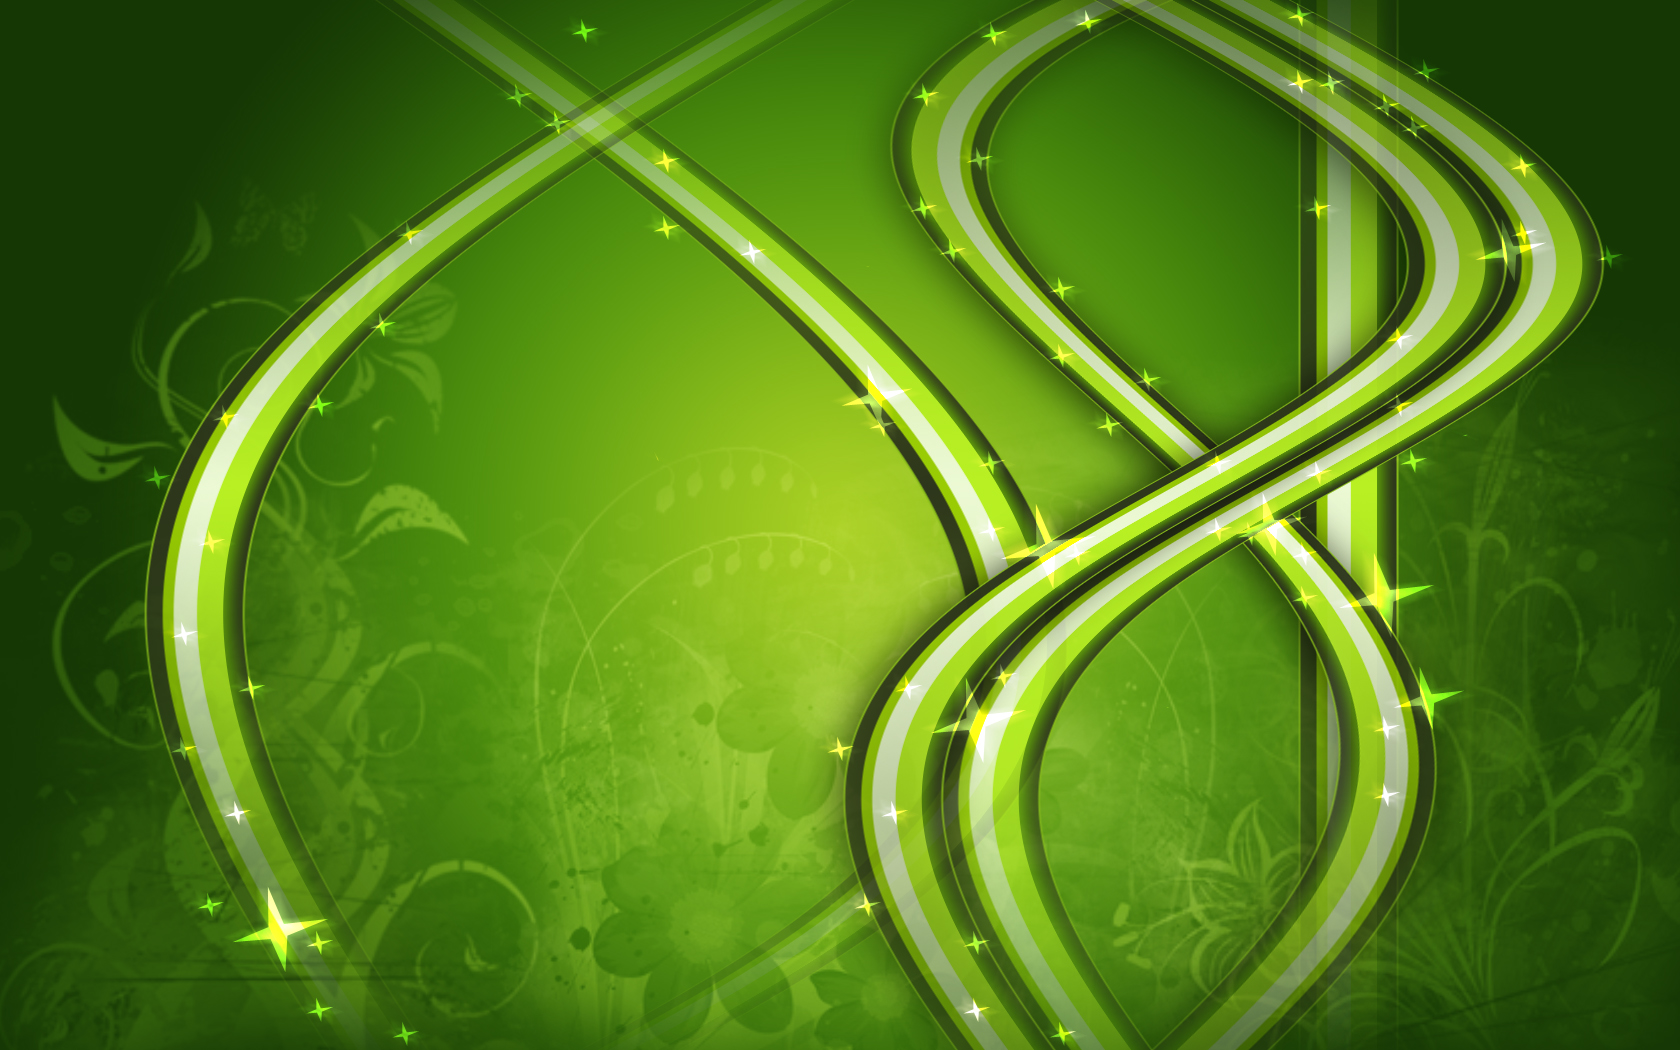 Green abstract by gapipro